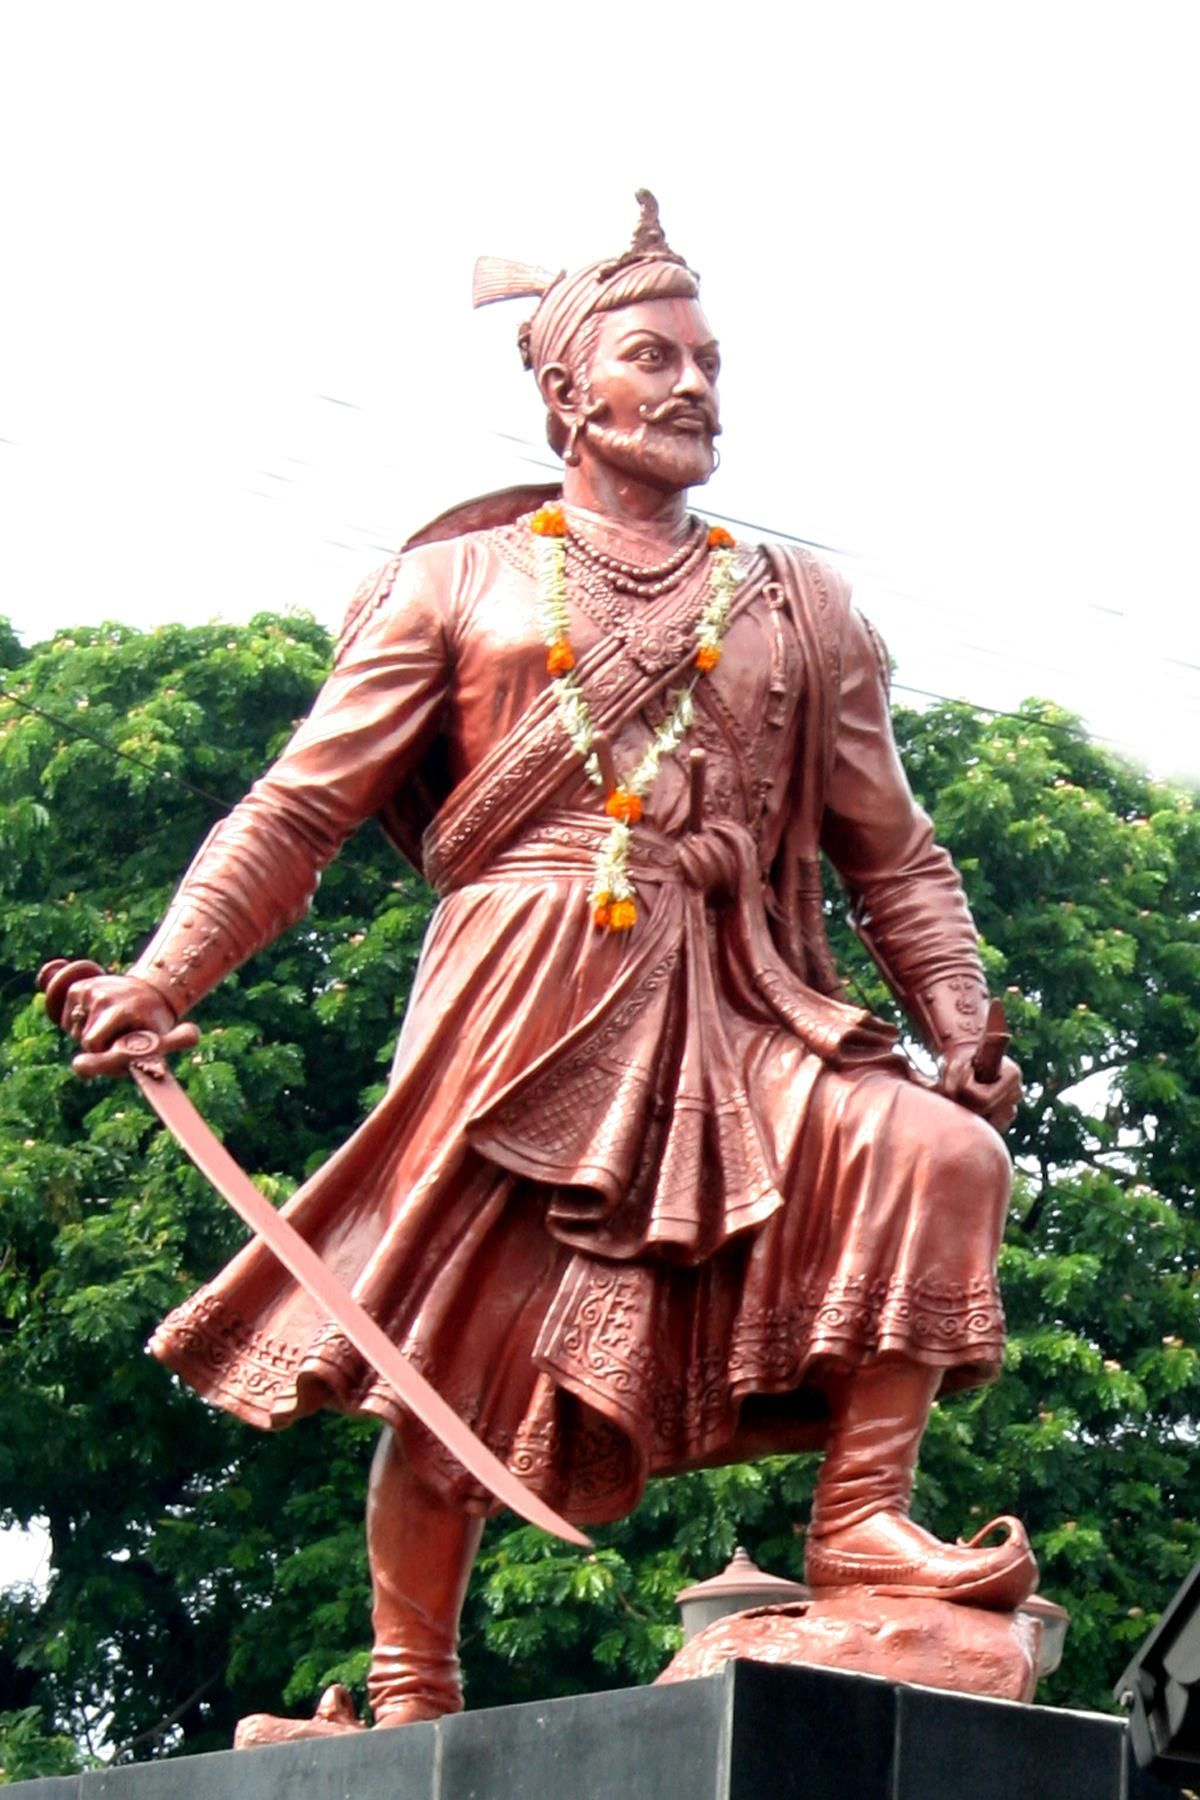 Hd wallpaper shivaji maharaj - Raje Shivaji Maharaj Wallpaper Hd Full Size Download Shivaji